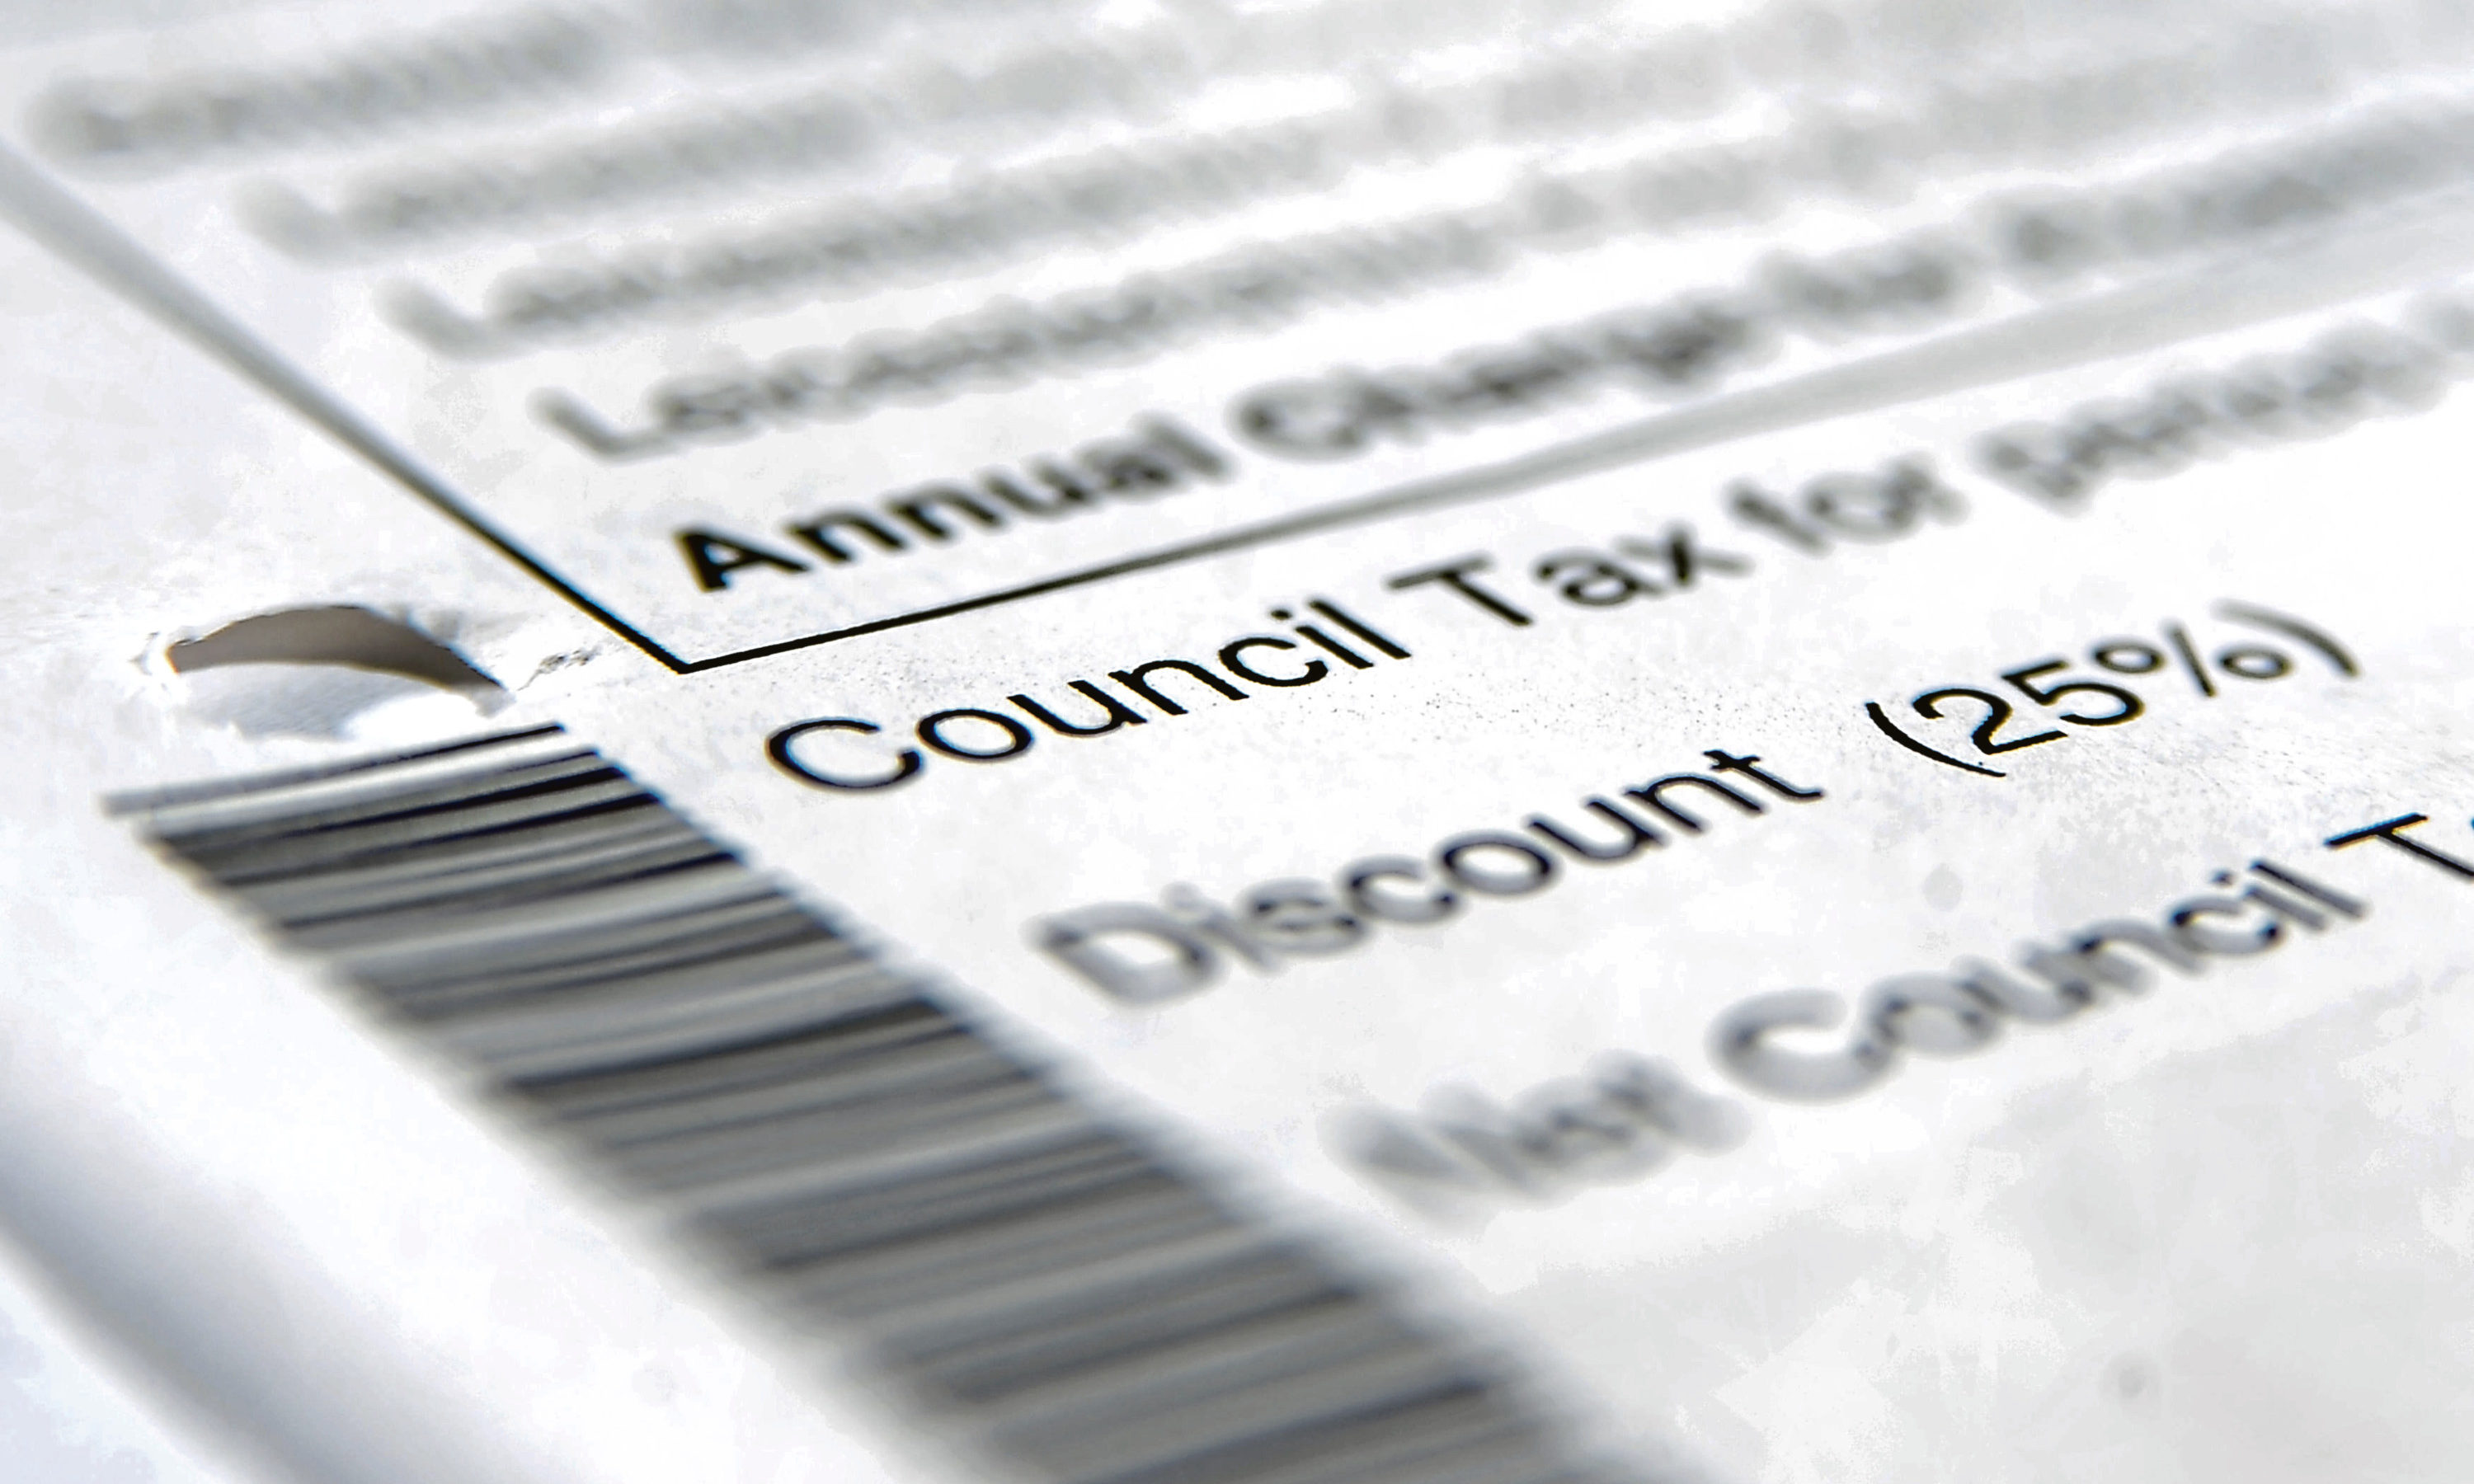 The public has been warned to be wary emails claiming to offer council tax refunds.